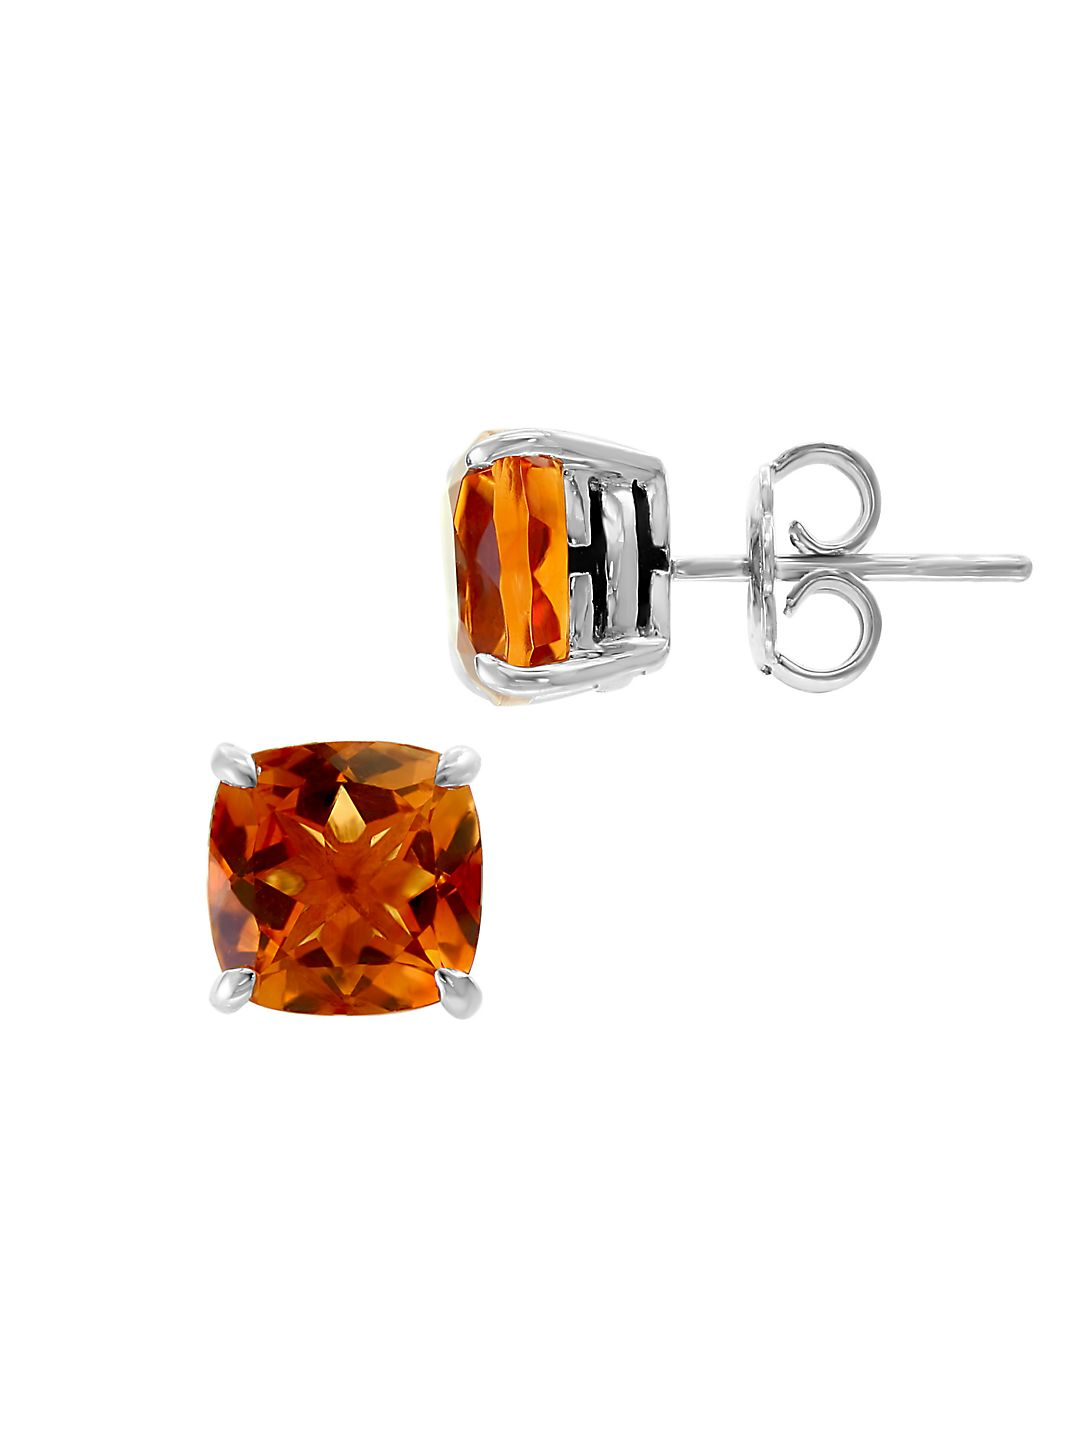 Sterling Silver & Citrine Basket Stud Earrings